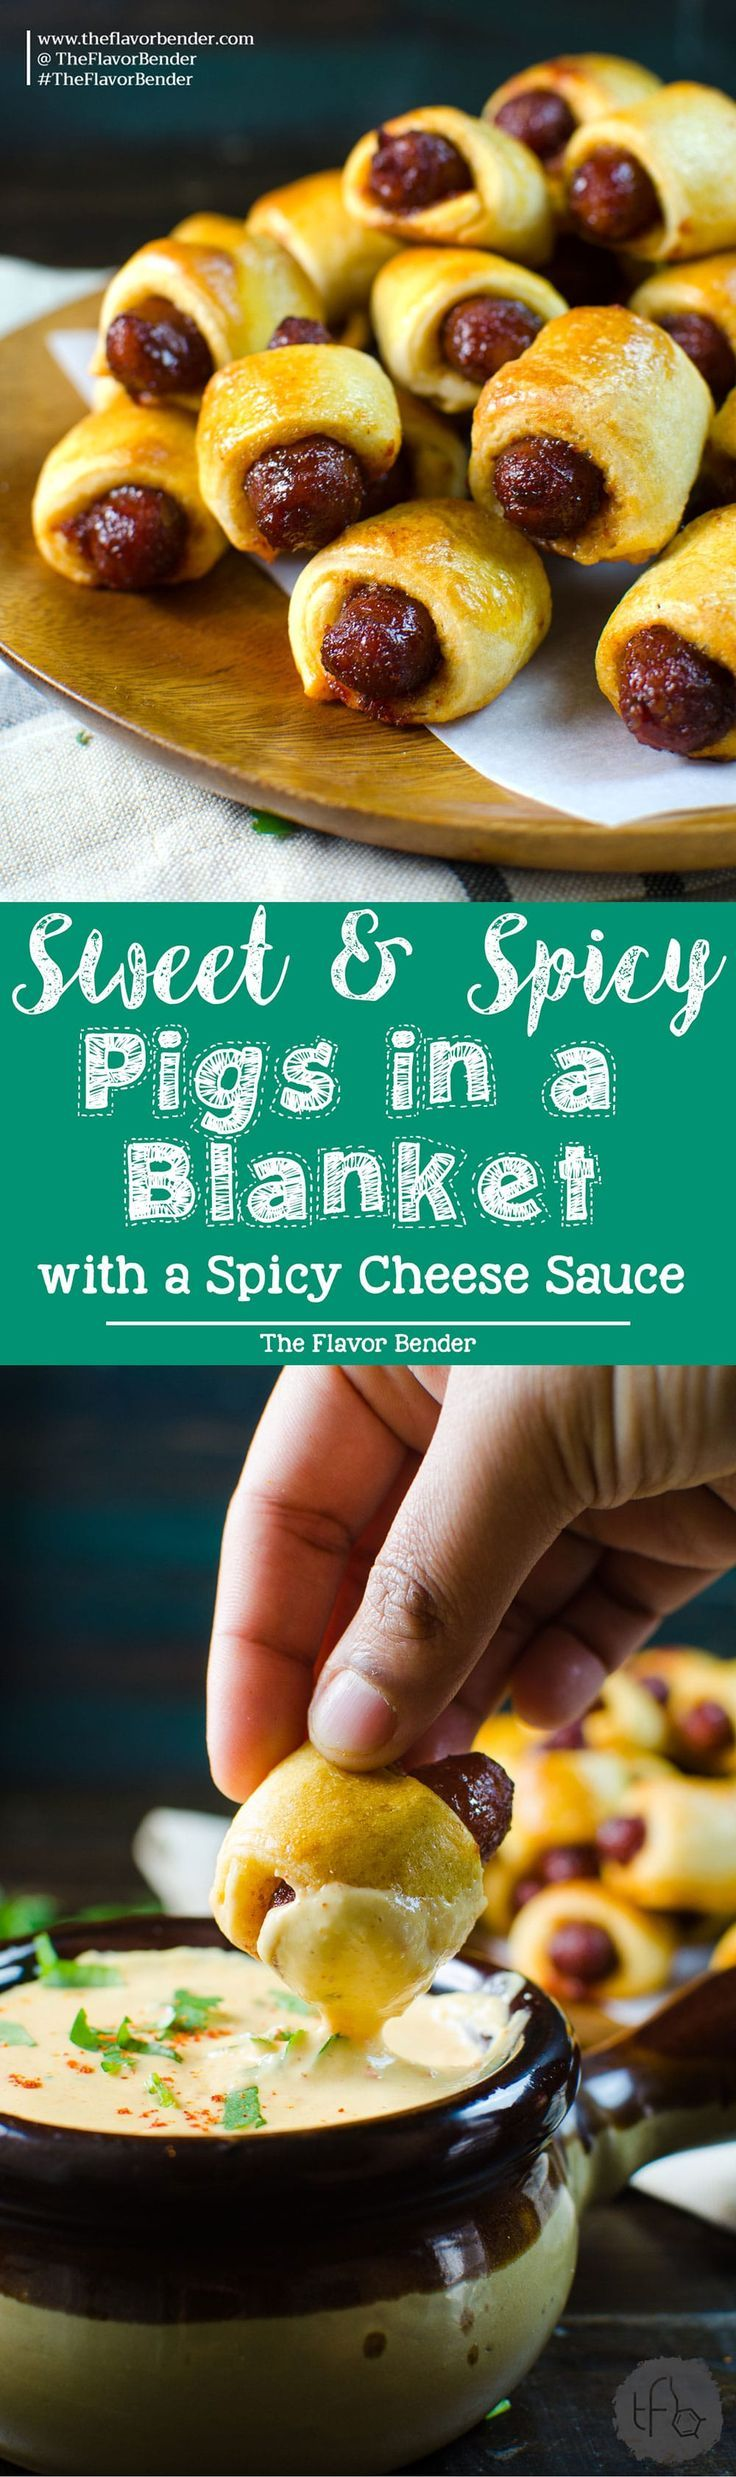 Sweet and Spicy Pigs in a Blanket - Kick up your regular Pigs in a Blanket with this sweet and spicy version served with a creamy spicy cheese sauce, spiced with Habanero and Mustard. Perfect for Holiday Parties, Game day snacks, March Madness or any party! Recipe from theflavorbender.com Party food | Appetizers | Pigs in a Blanket | Crescent dough | Nacho Sauce | Cheese Sauce | Game Day | March Madness | Holiday Appetizers